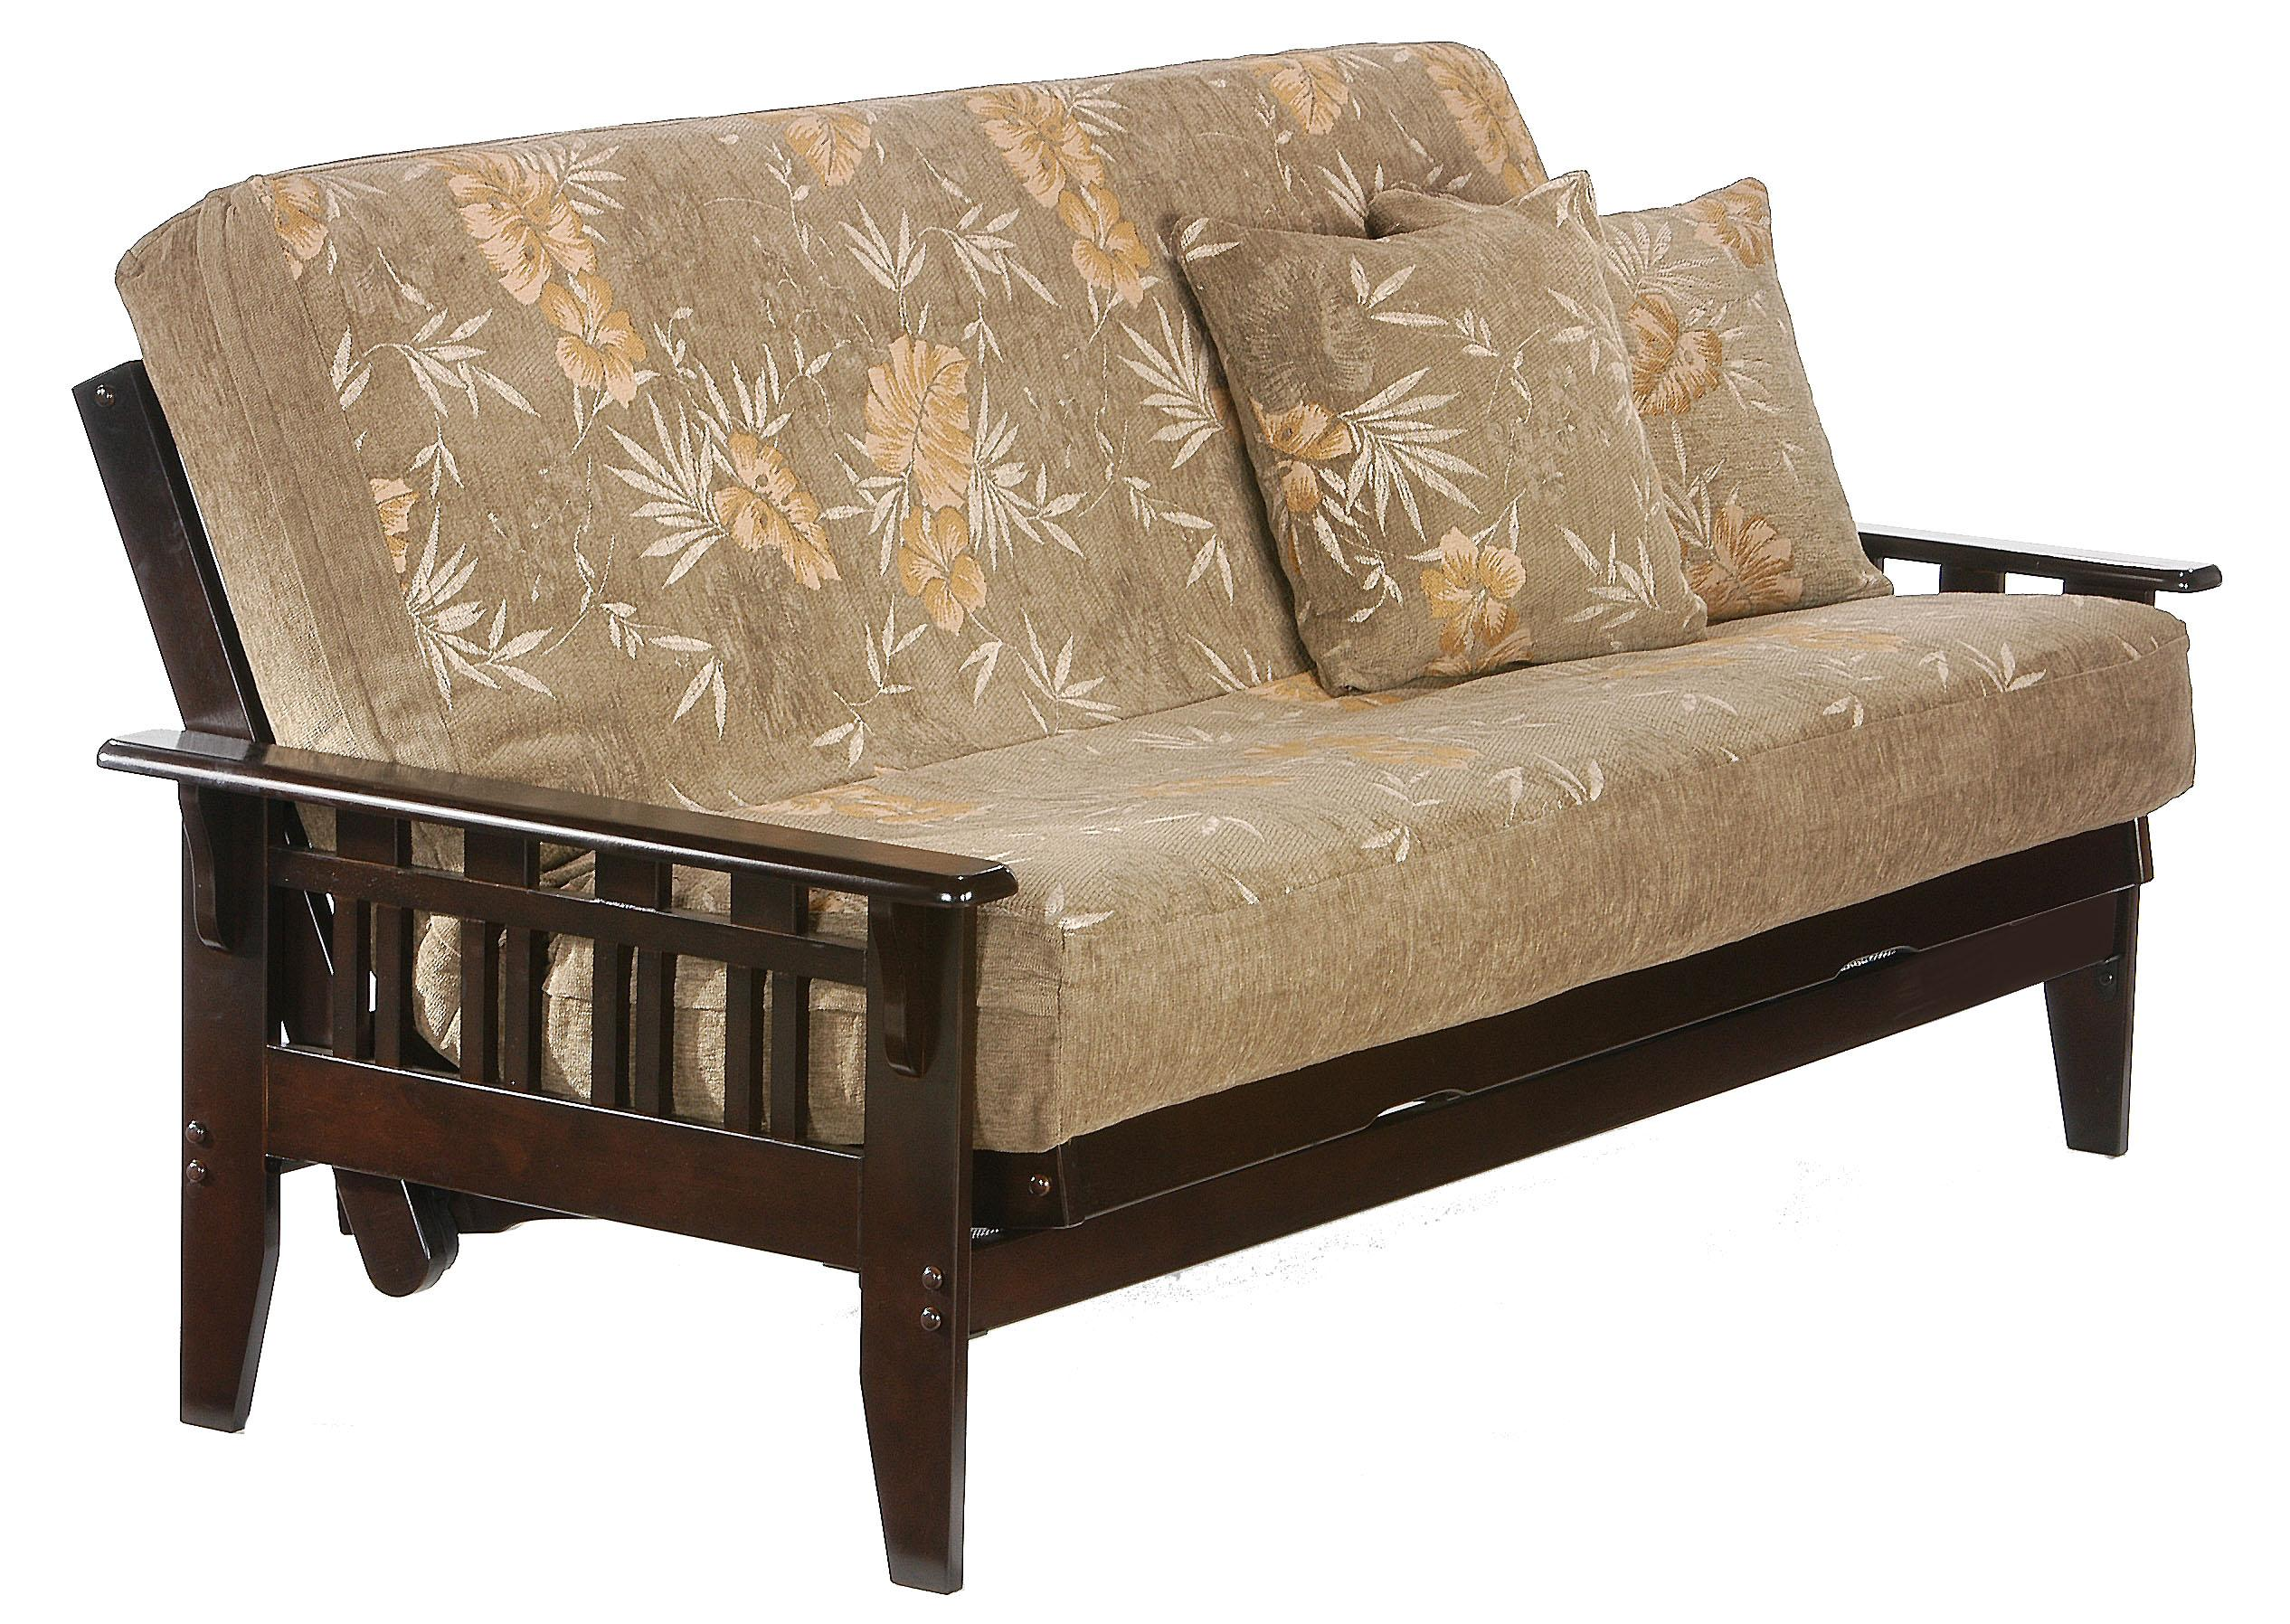 Kingston Dark Chocolate Chair Size Futon by Night & Day Furniture at Furniture Superstore - Rochester, MN